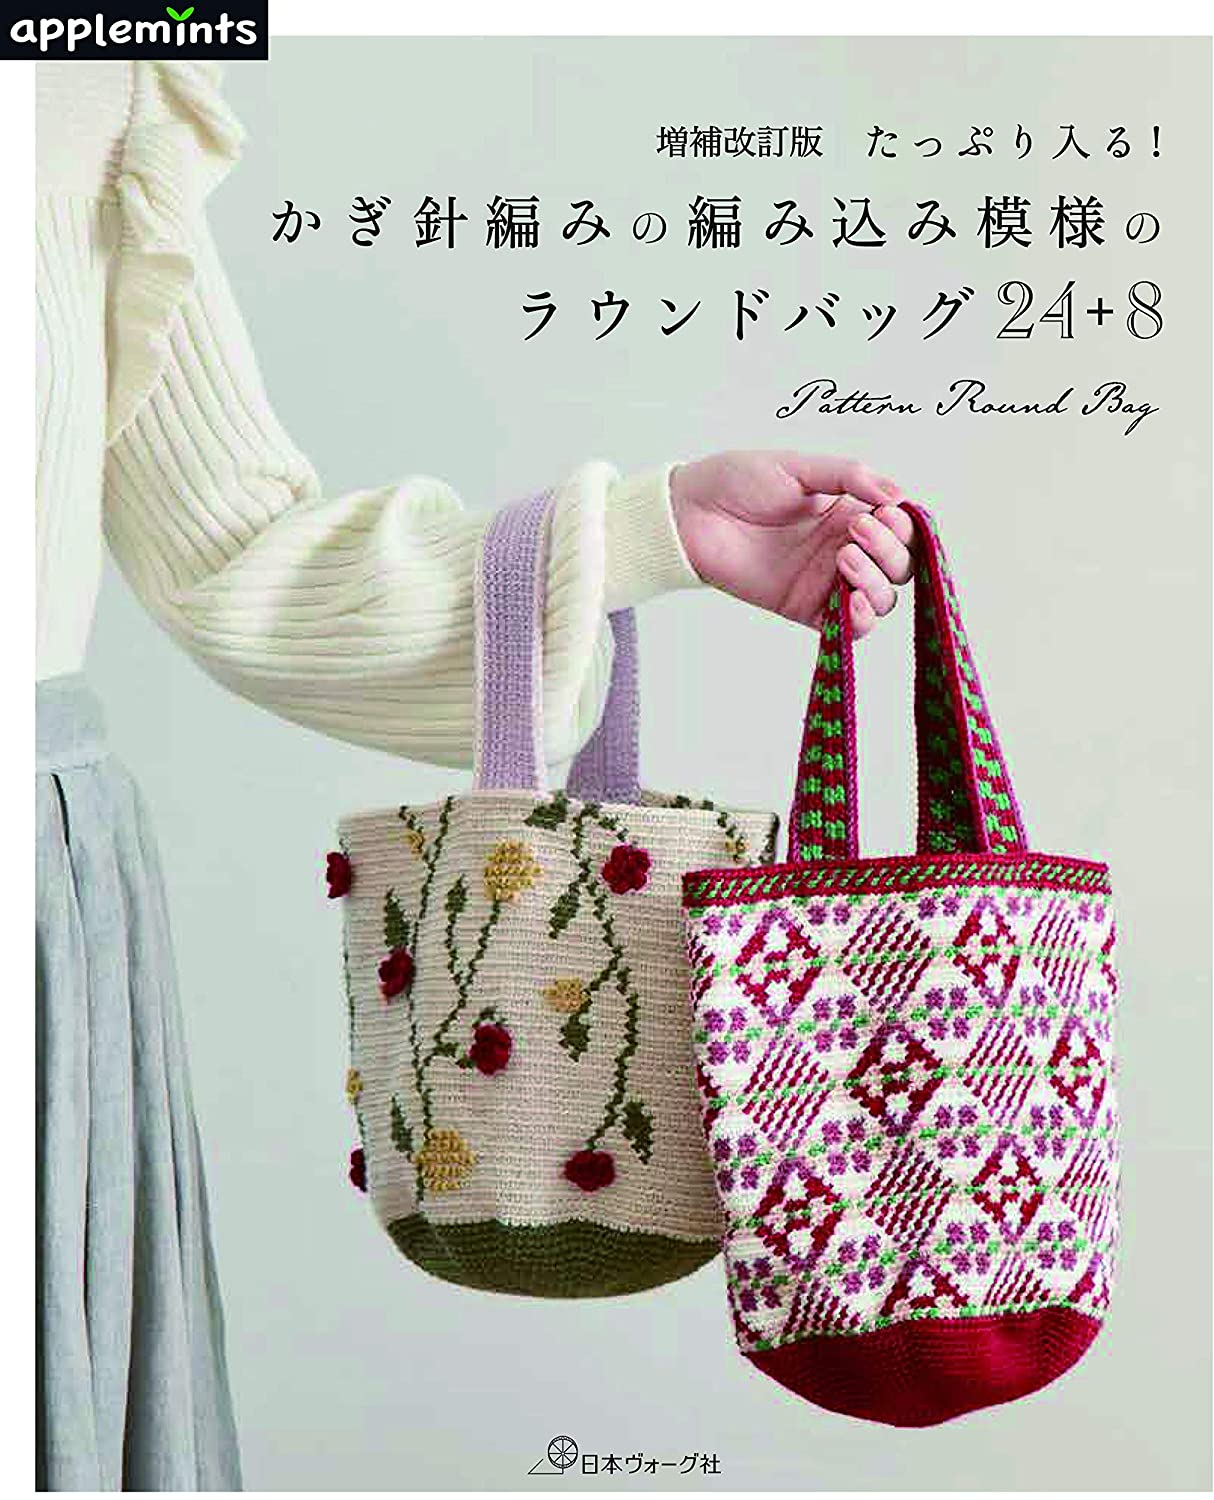 Round bag with crochet pattern 24 + 8